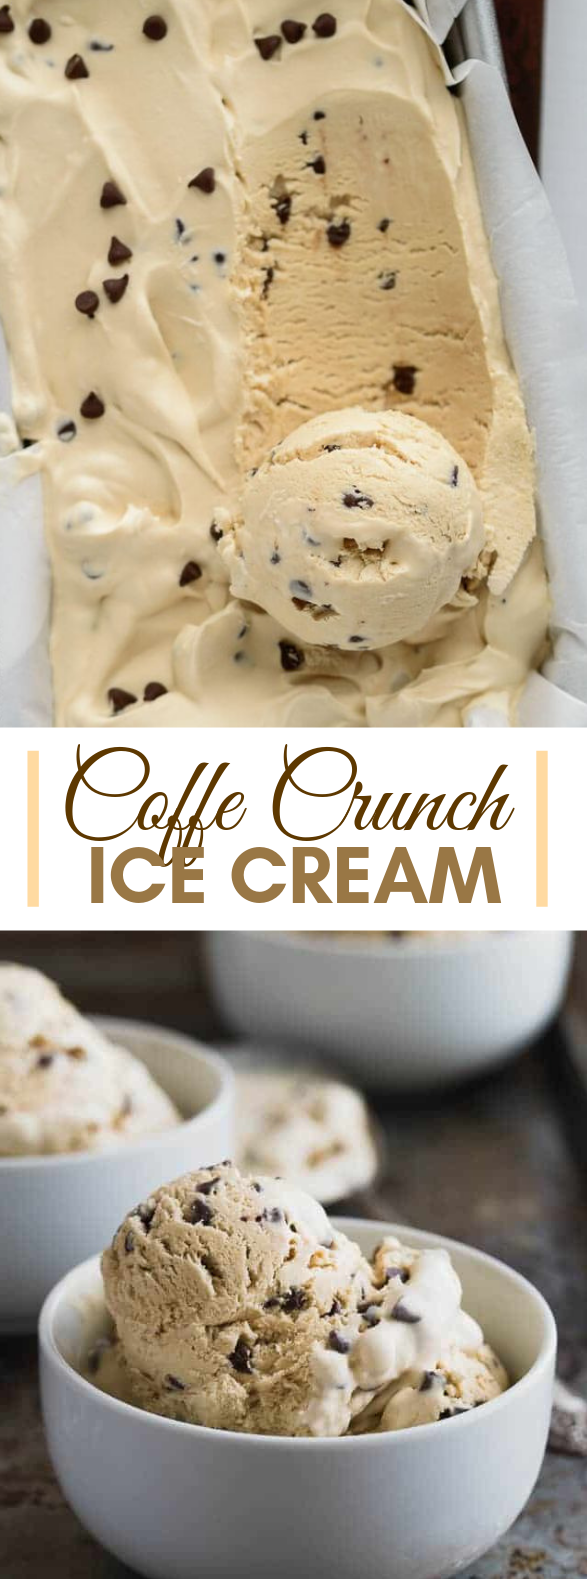 Coffee Crunch Ice Cream (No Churn) #dessert #chocolate